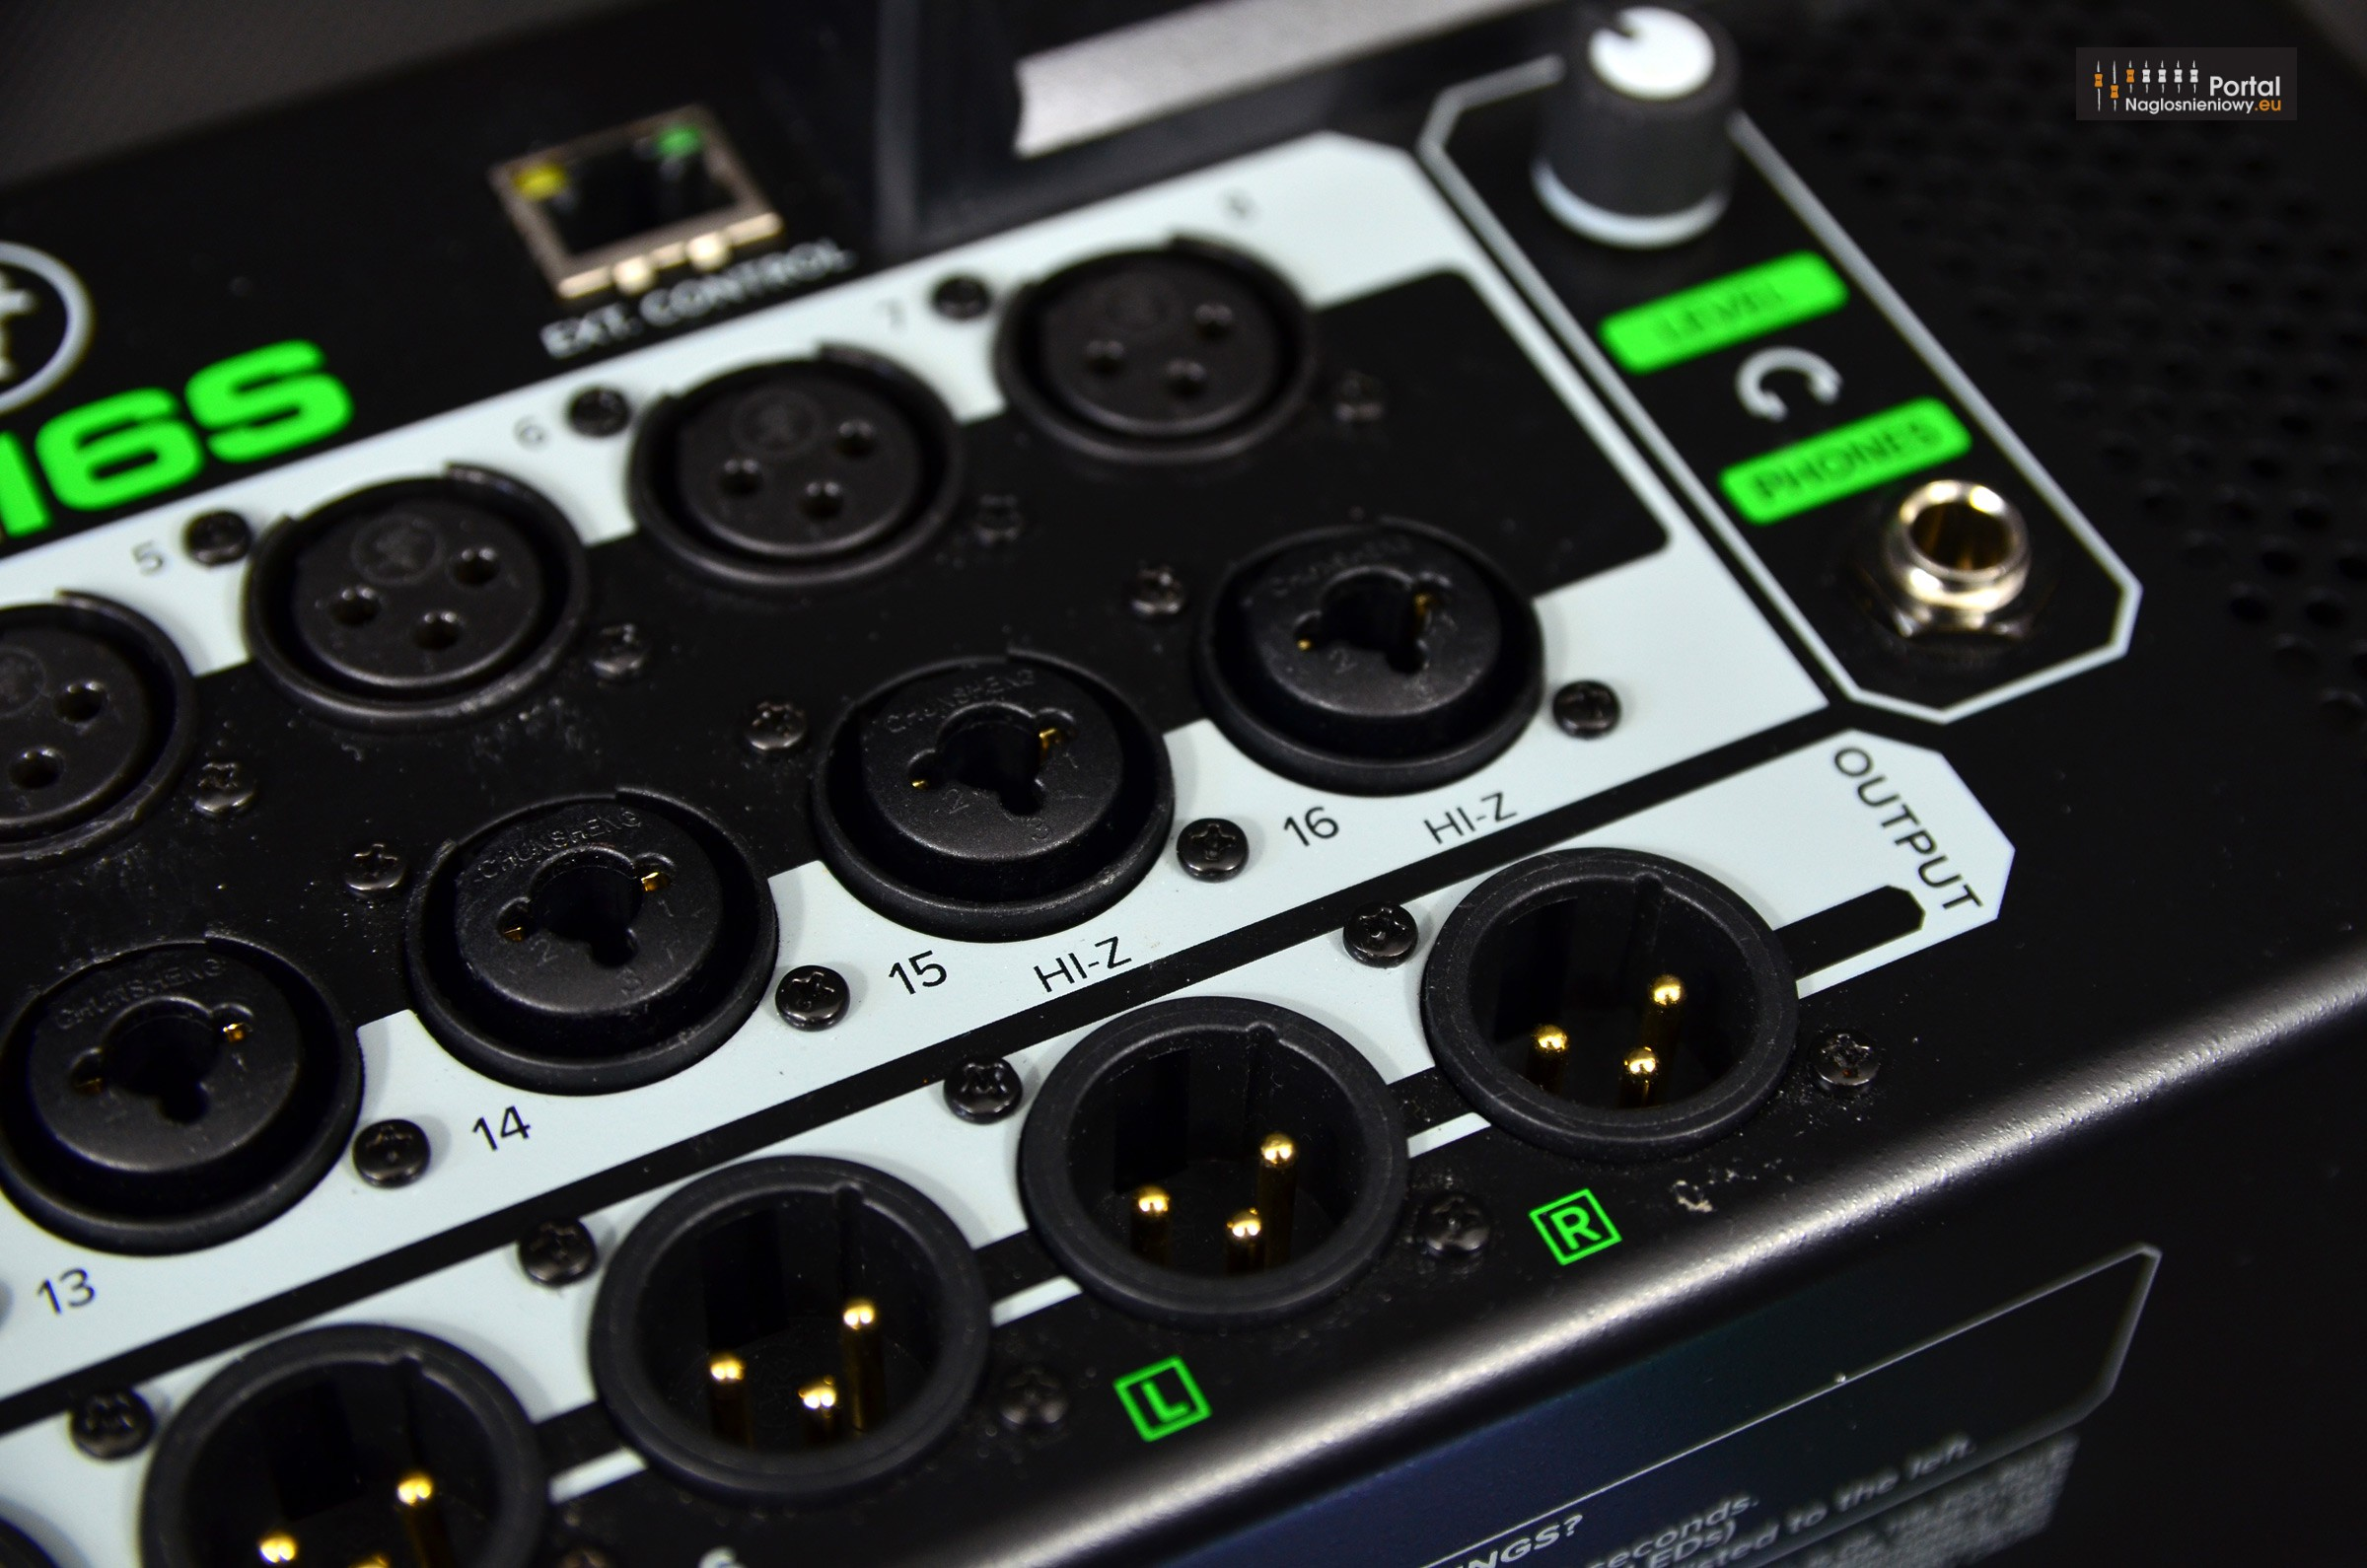 Mackie DL16S digital mixer HI Z inputs